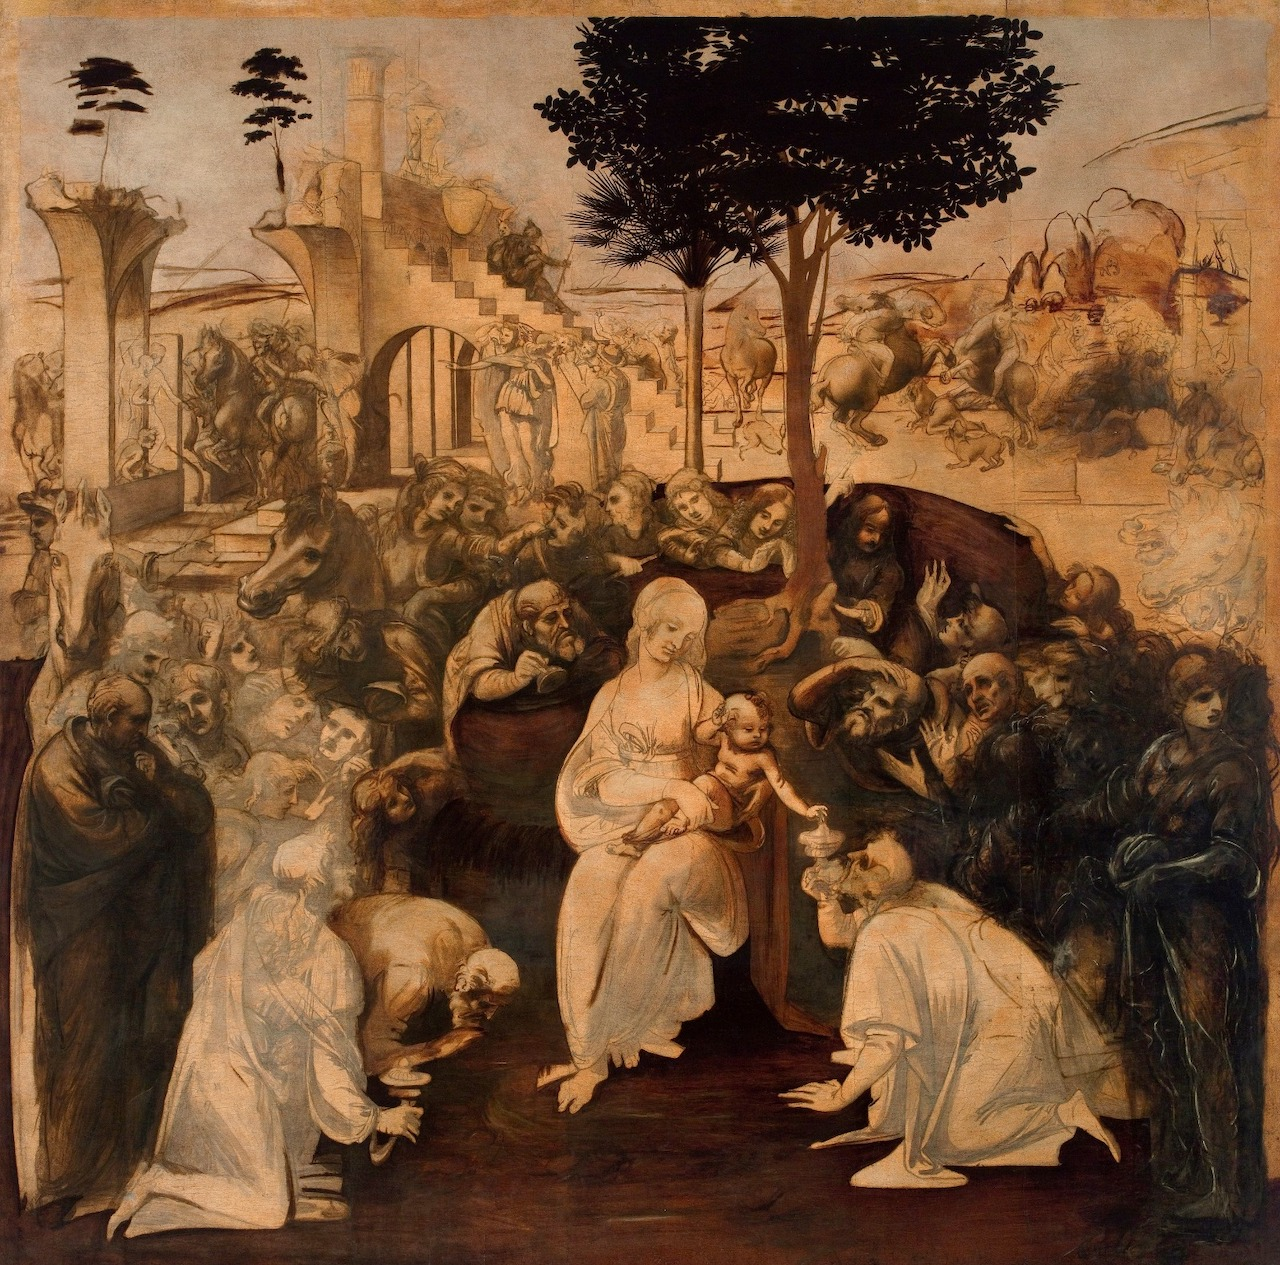 At the Uffizi, the Nativity told in the language of art